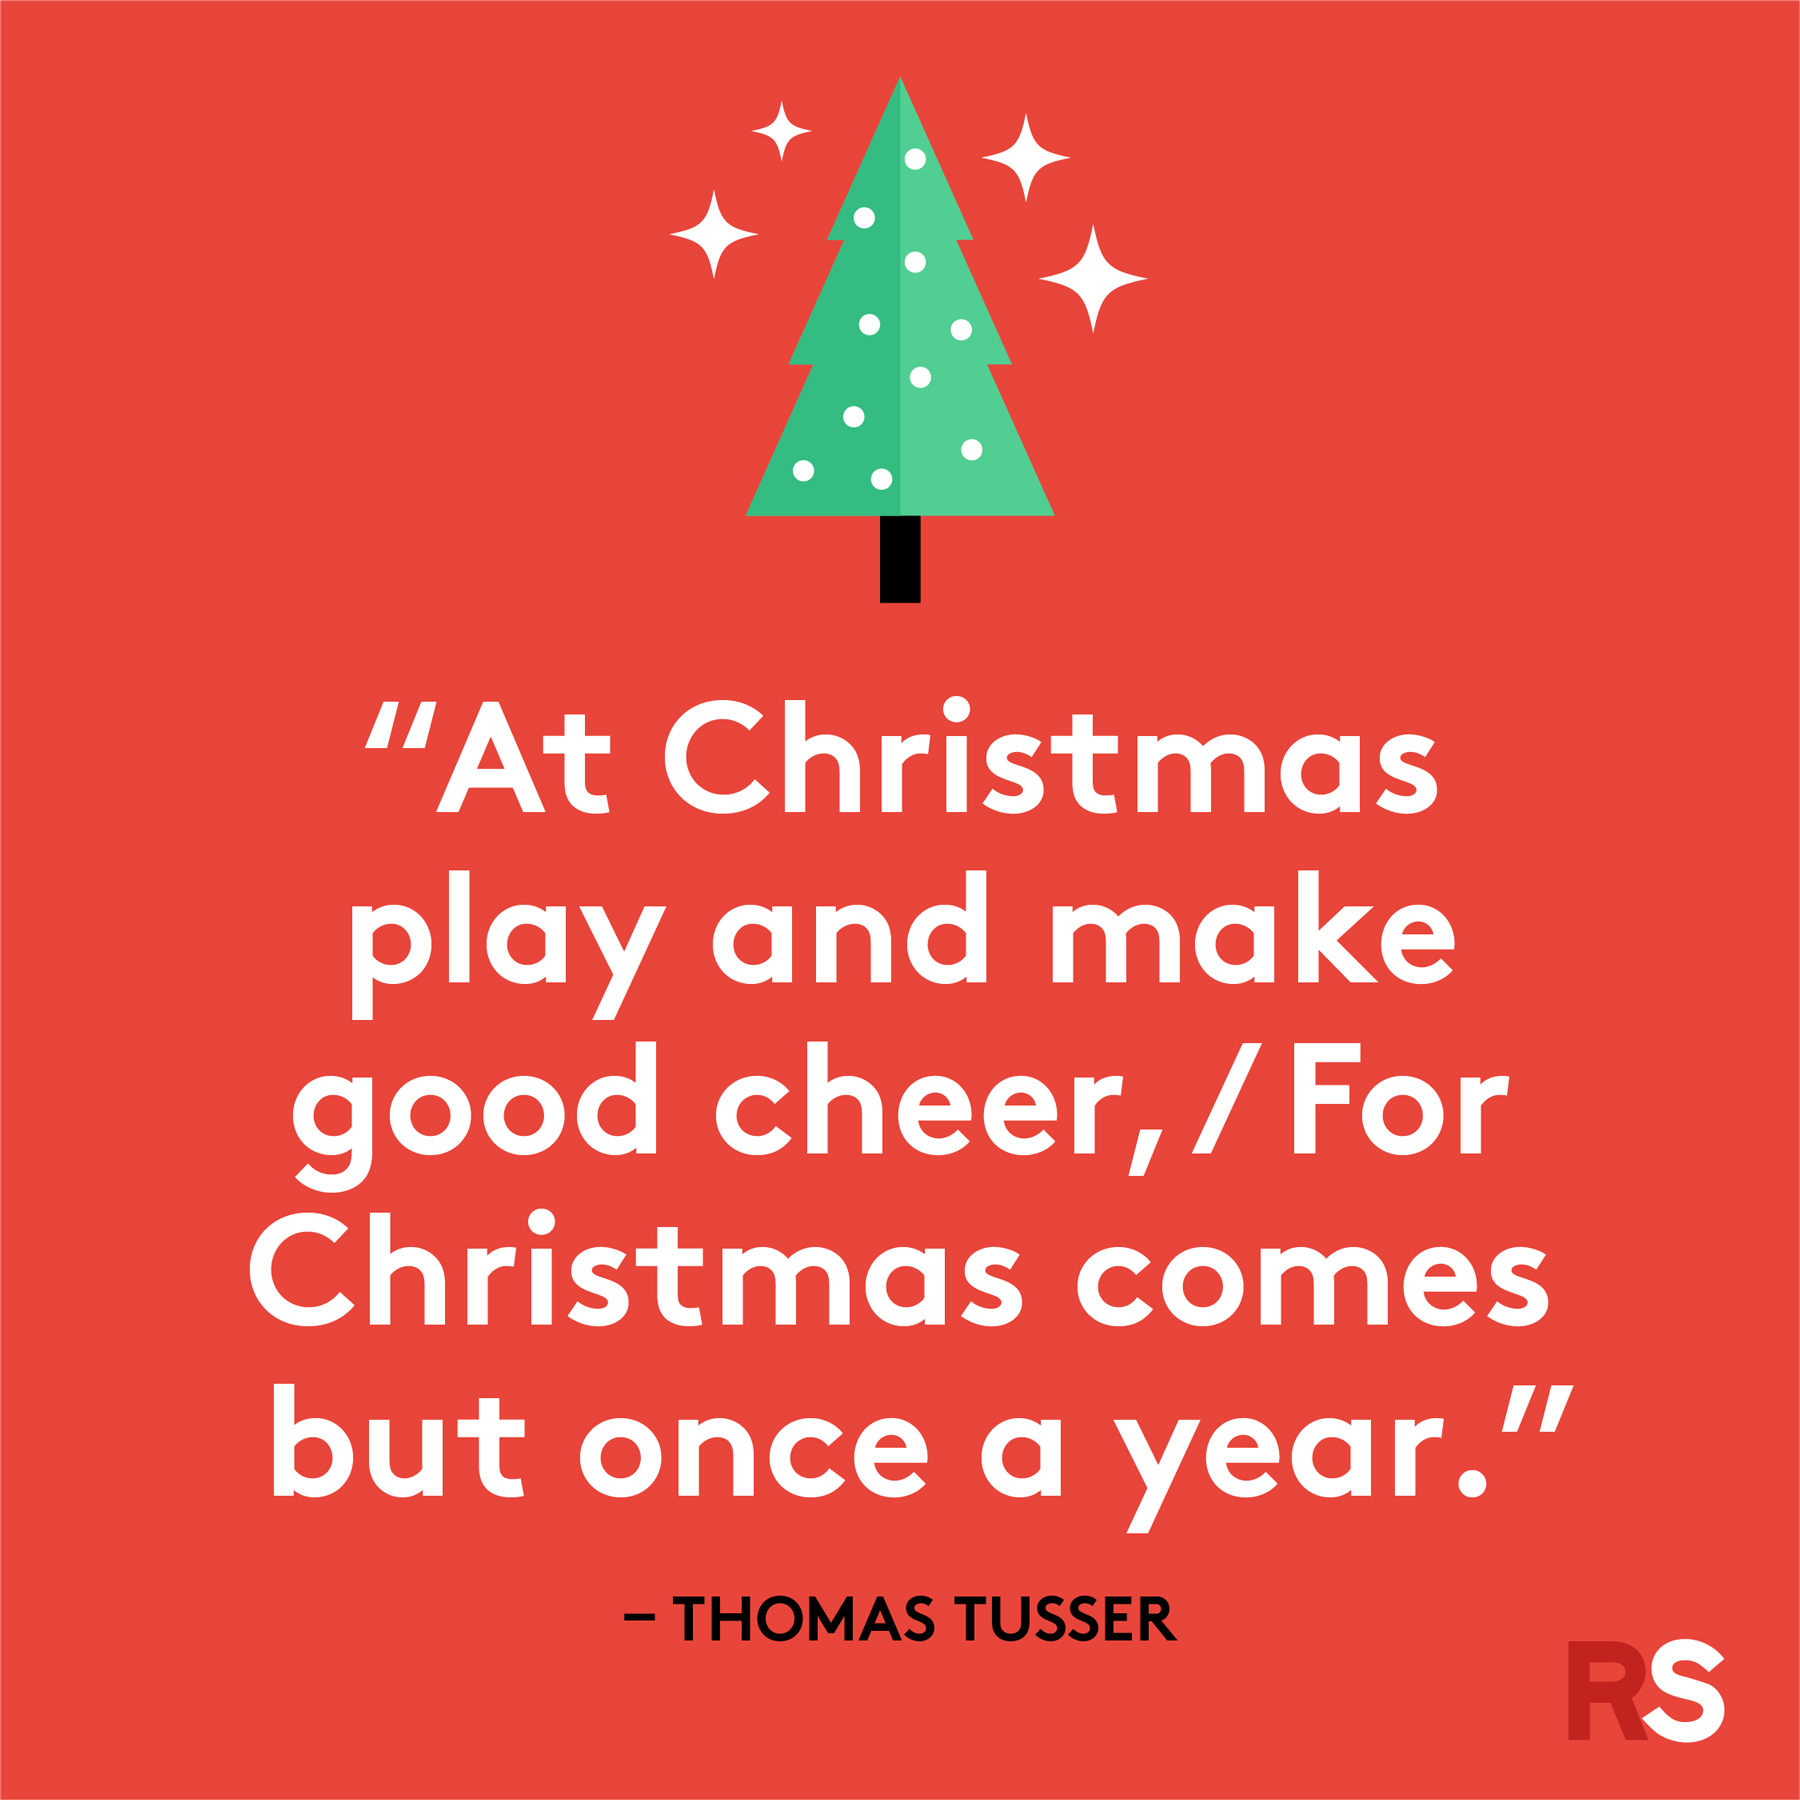 Best Christmas quotes - Thomas Tusser